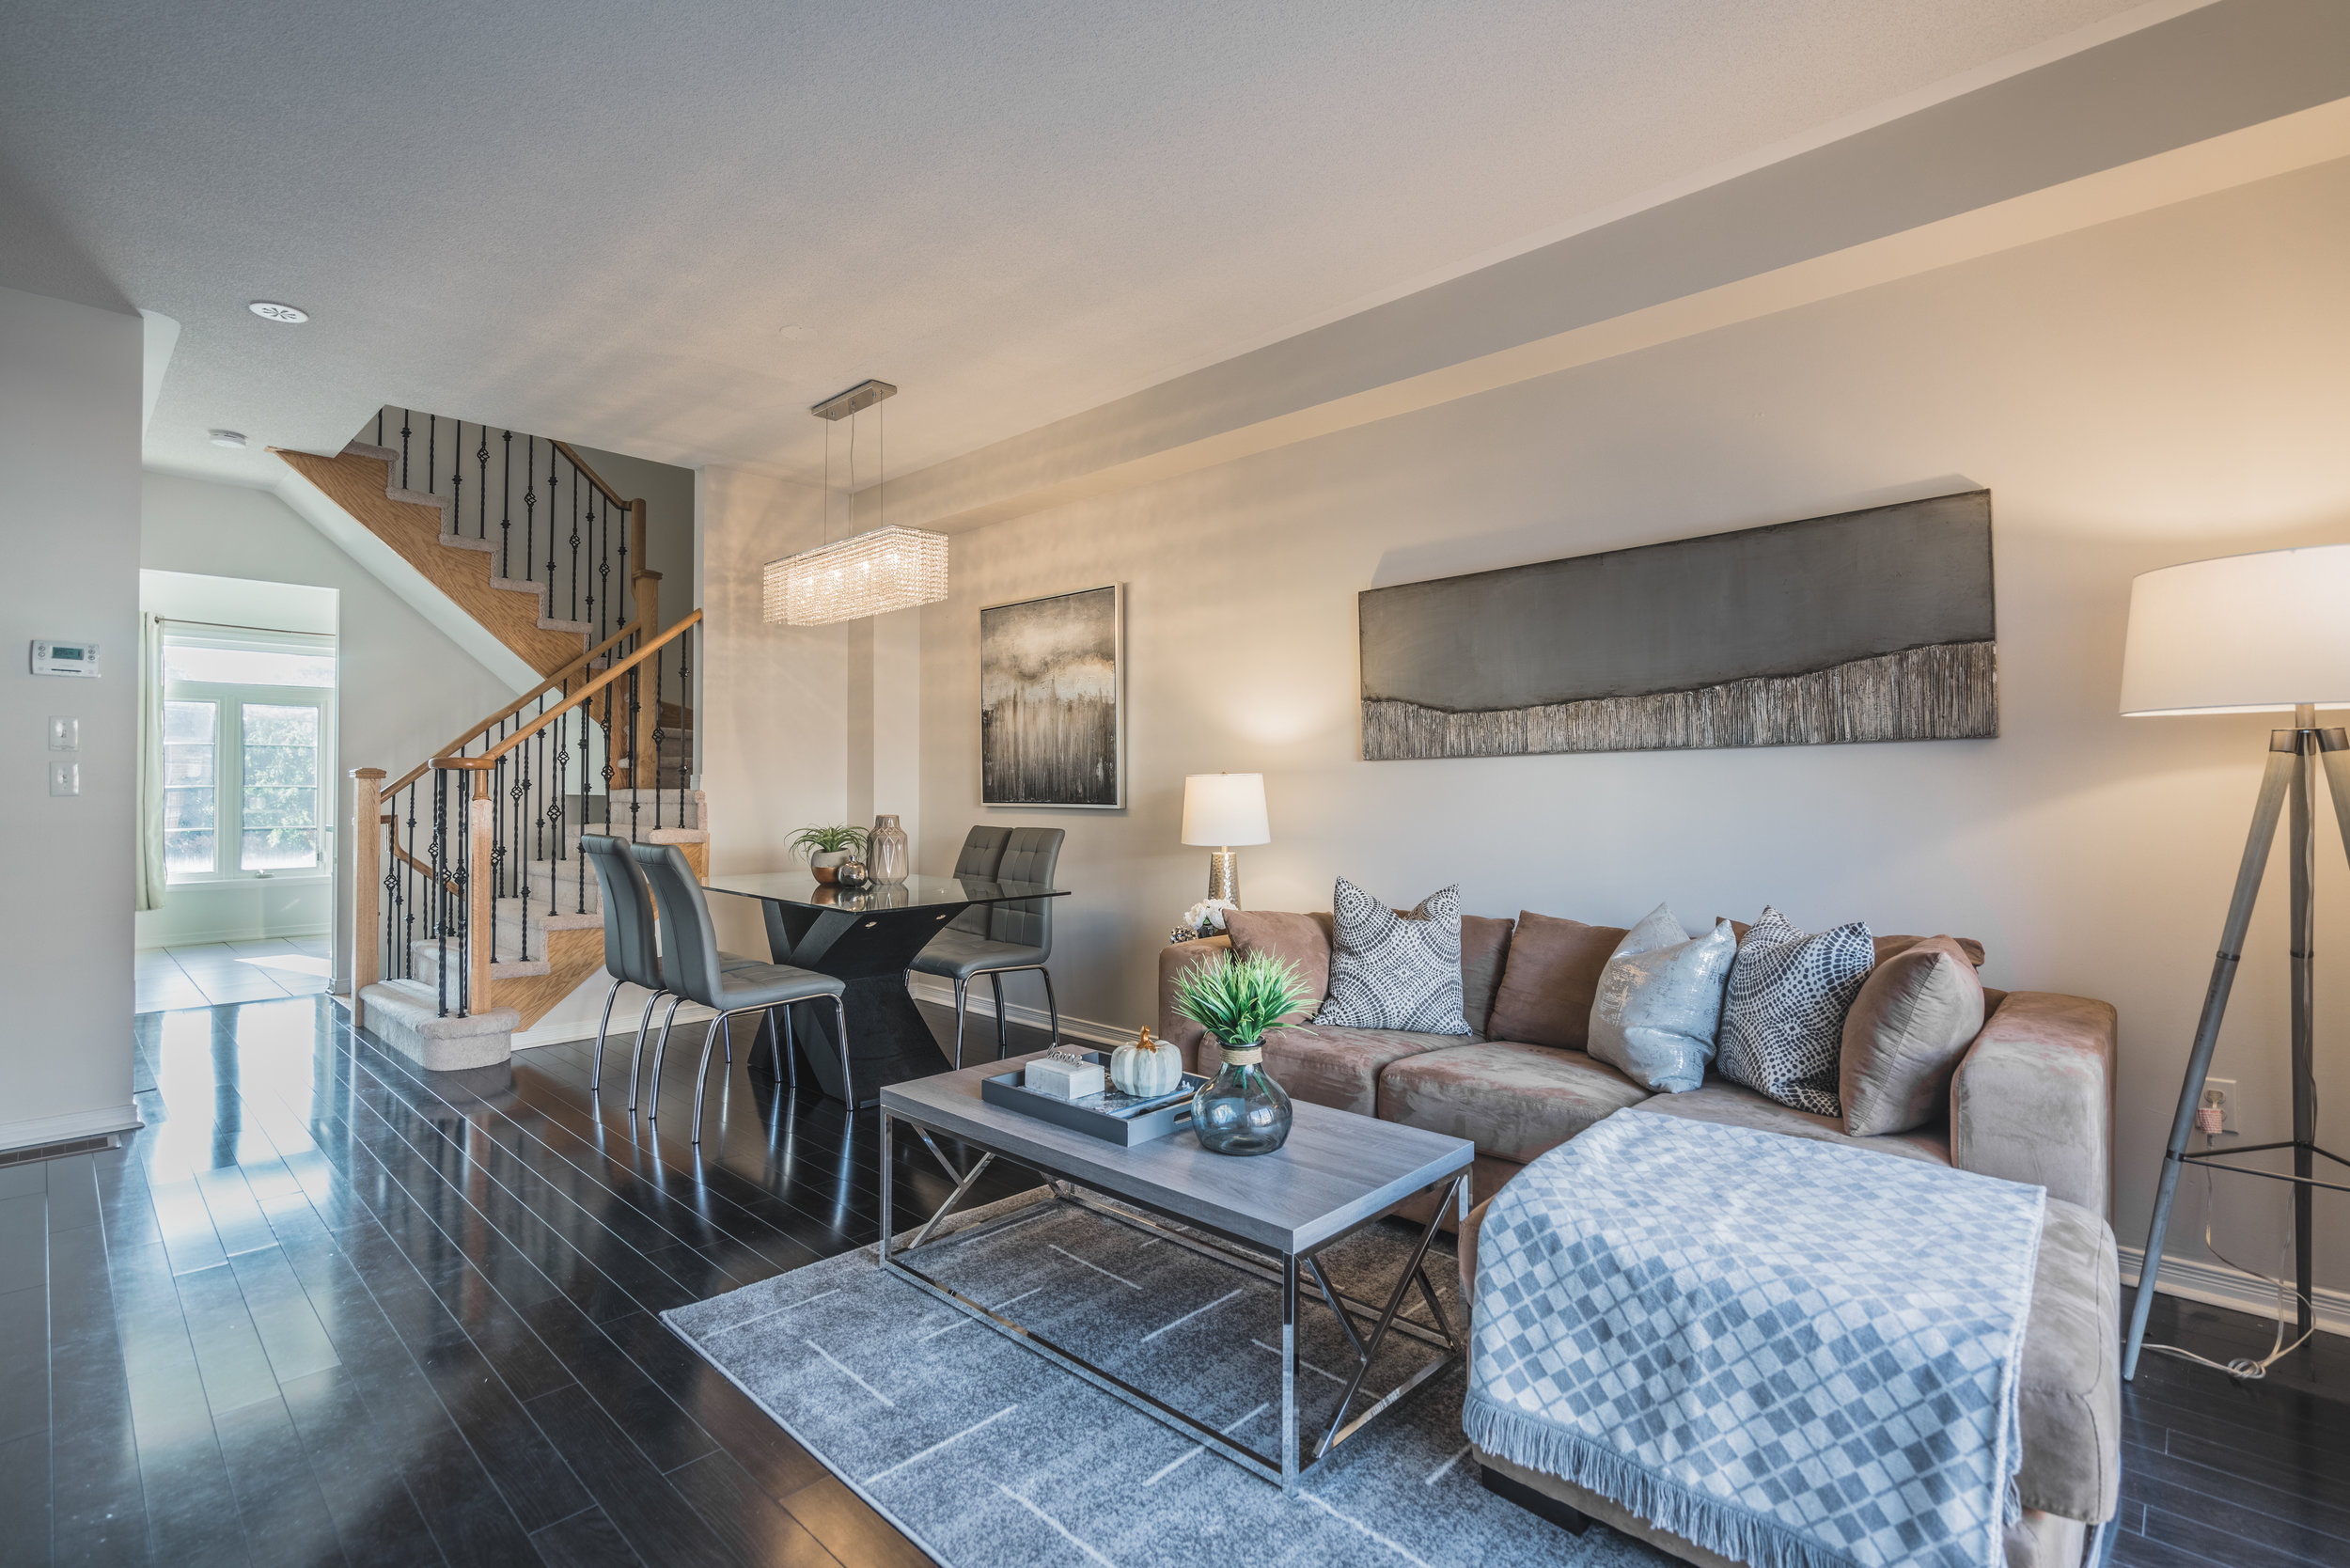 Beehive Markham occupied home staging home stager | Classy Glam Staging 3